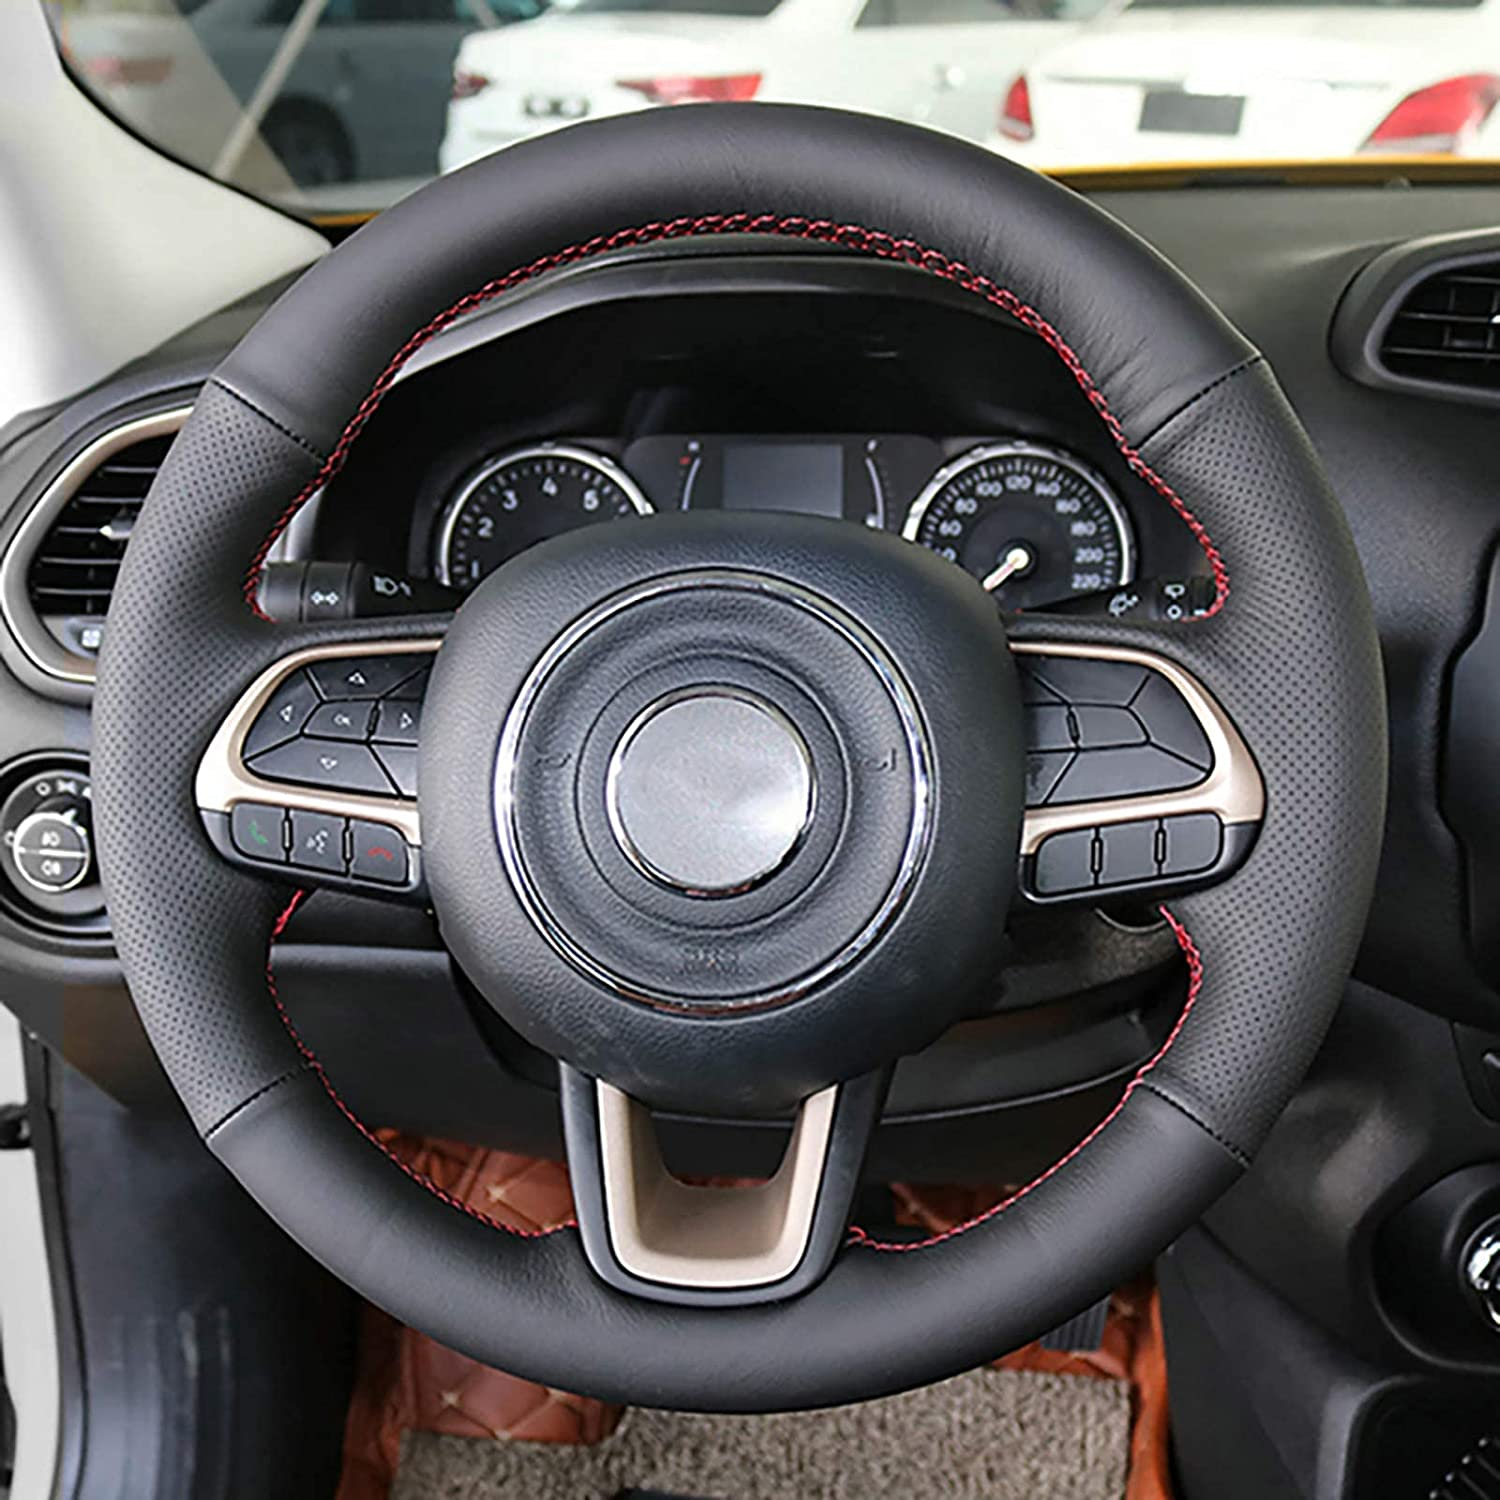 Qind1aS For Jeep Renegade 2016 2017 2021 model 2019 Wheel 2018 Car Steering Memphis Mall